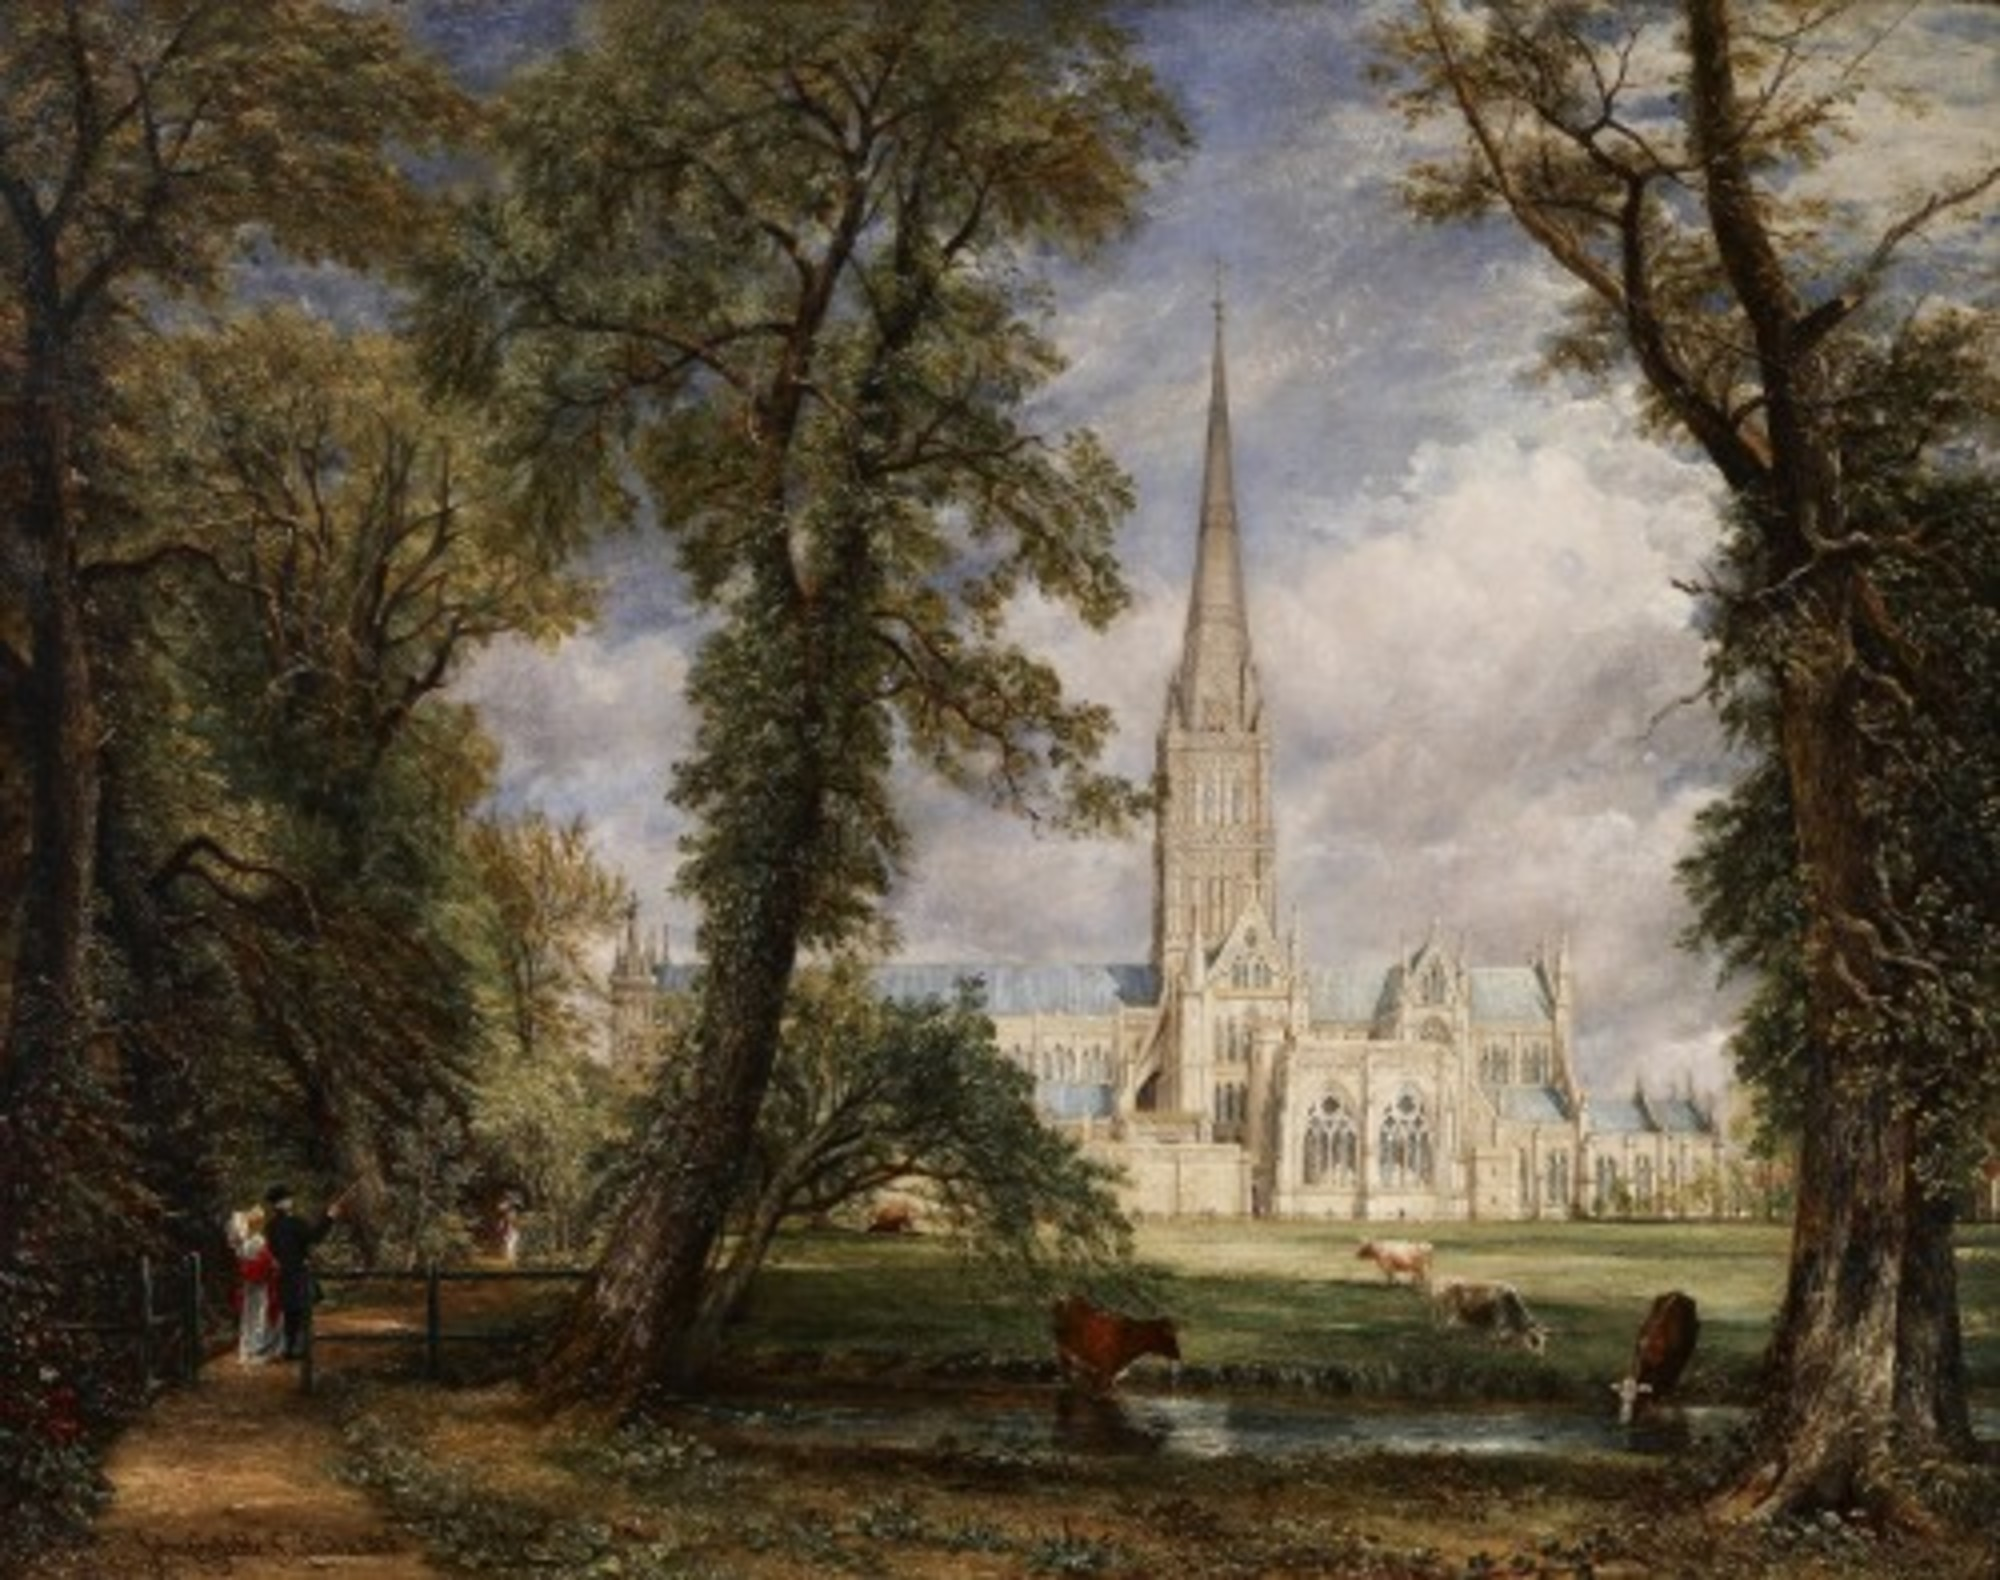 John_Constable_-_Salisbury_Cathedral_from_the_Bishops_Garden_-_Google_Art_Project.jpg